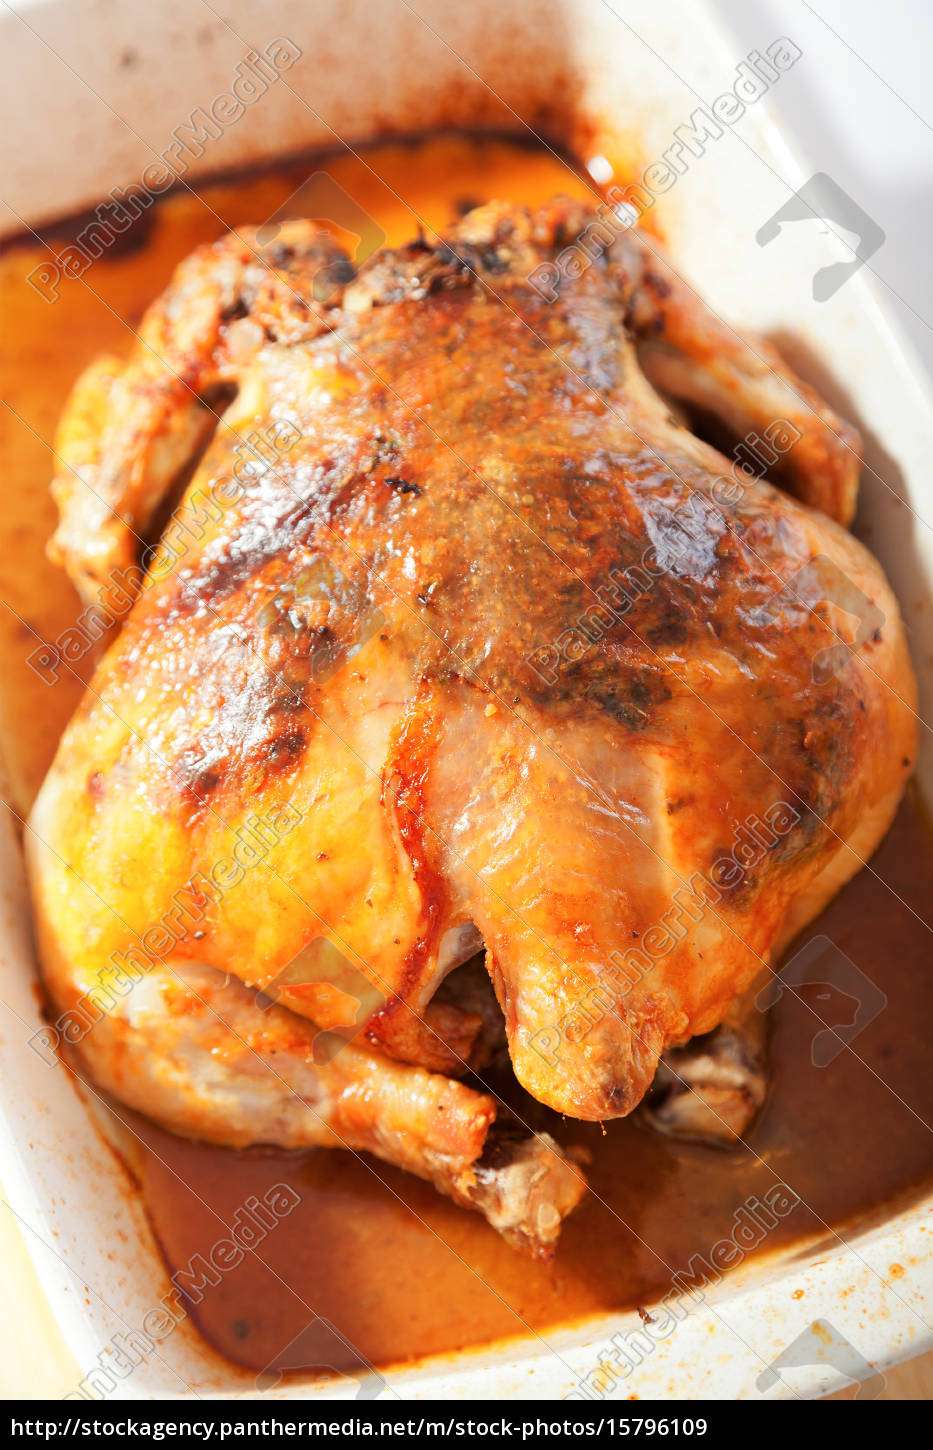 baked, whole, chicken, baked, whole, chicken - 15796109